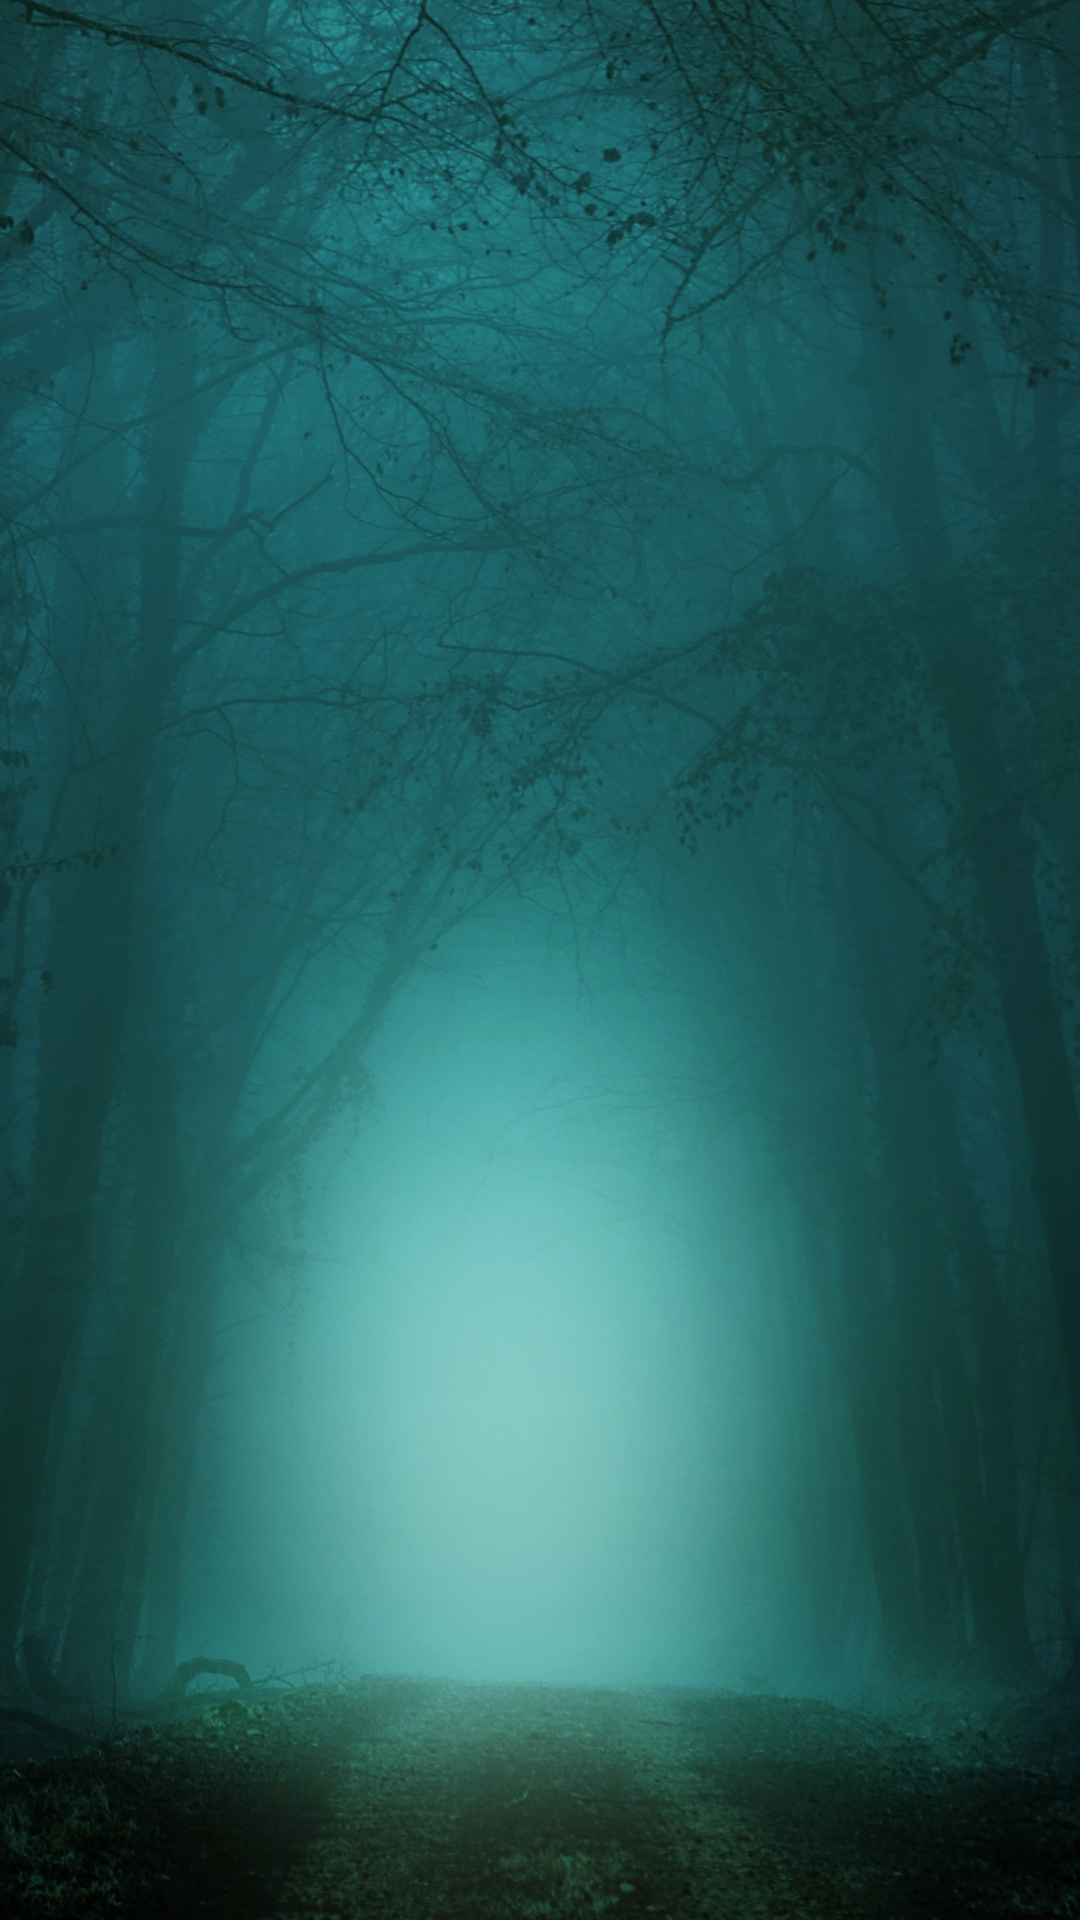 Forest 4k Wallpaper Path Foggy Morning Teal Cold Turquoise Trees 5k Nature 390